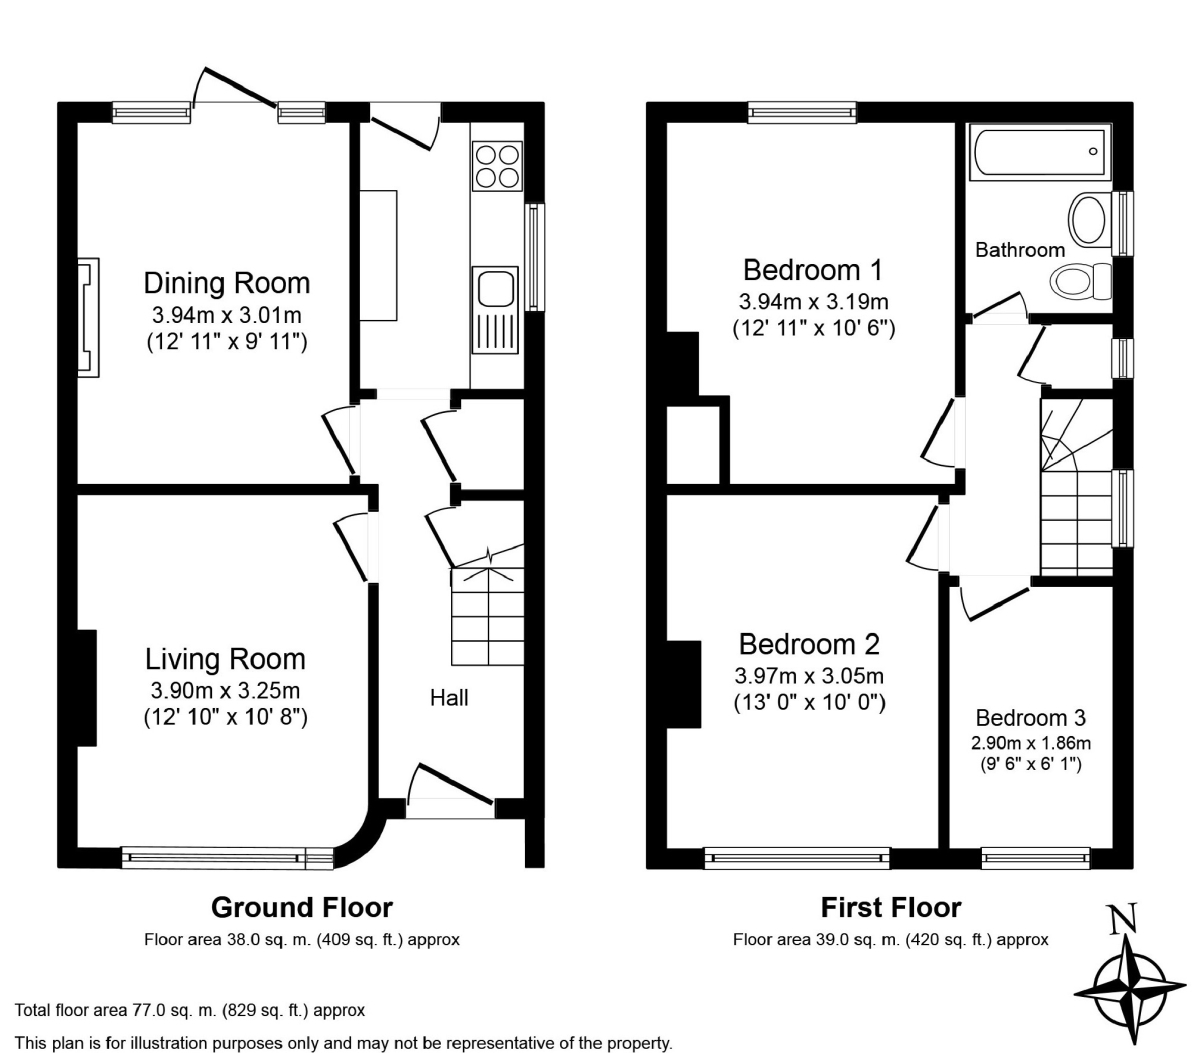 3 Bed House Floor Plans Uk